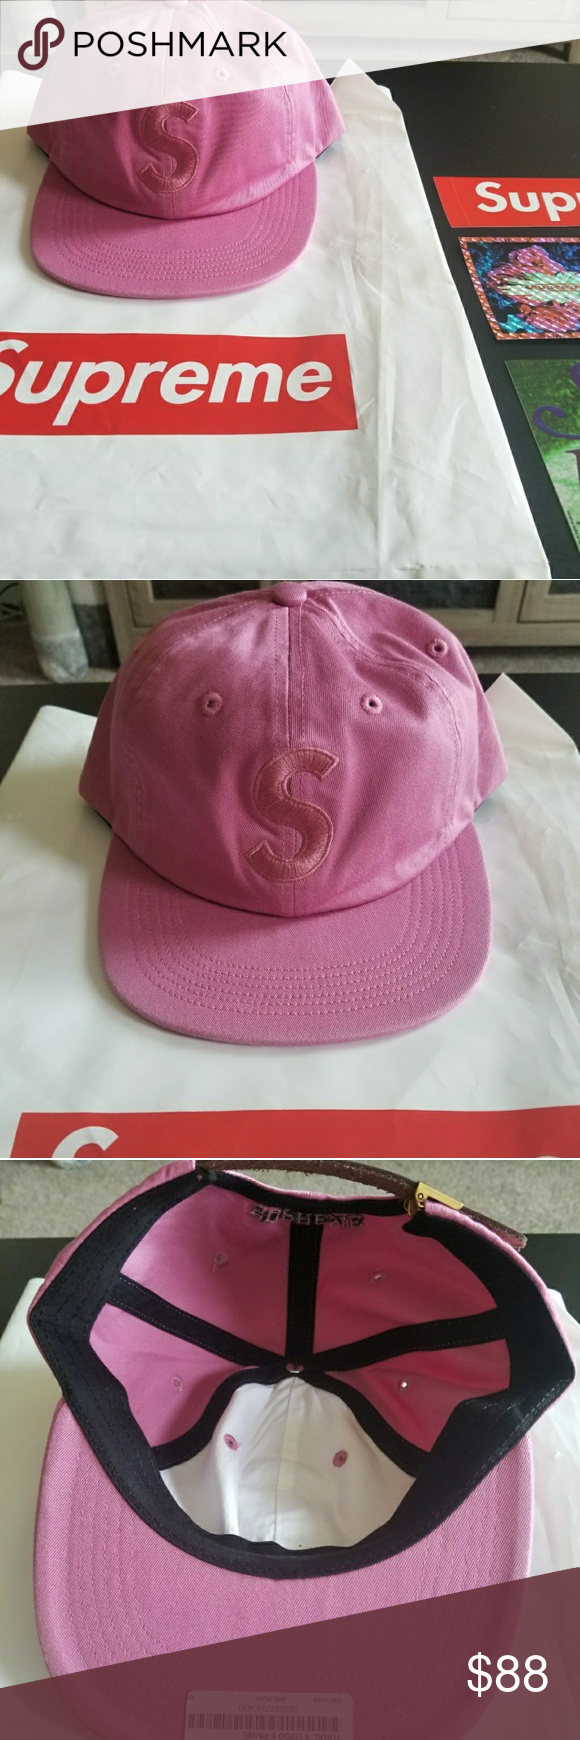 40b458ee01c FW 17 Supreme Tonal S Logo 6-Panel Cap Brand NEW! Straight from Supreme  NewYork website. Color  Bright Rose Comes with 3 supreme stickers! Supreme  Other